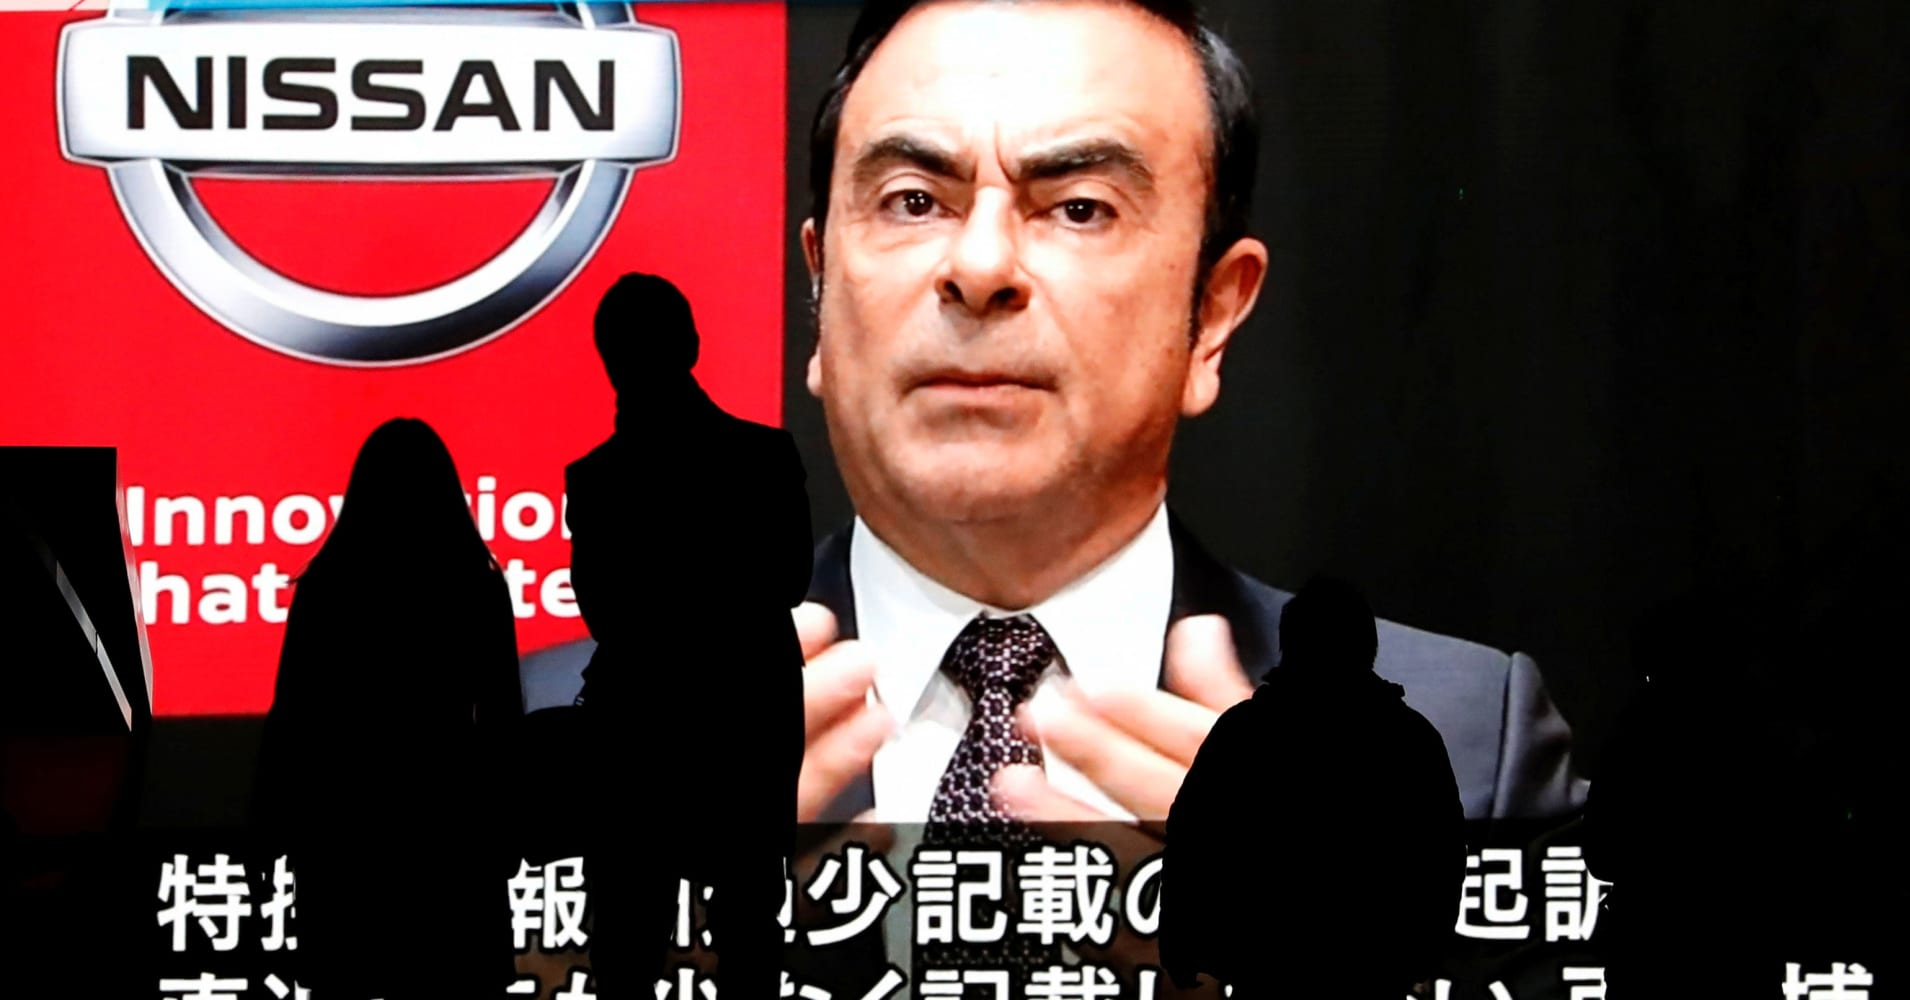 Tokyo prosecutors indict Nissan's ex-chairman Ghosn for financial misconduct